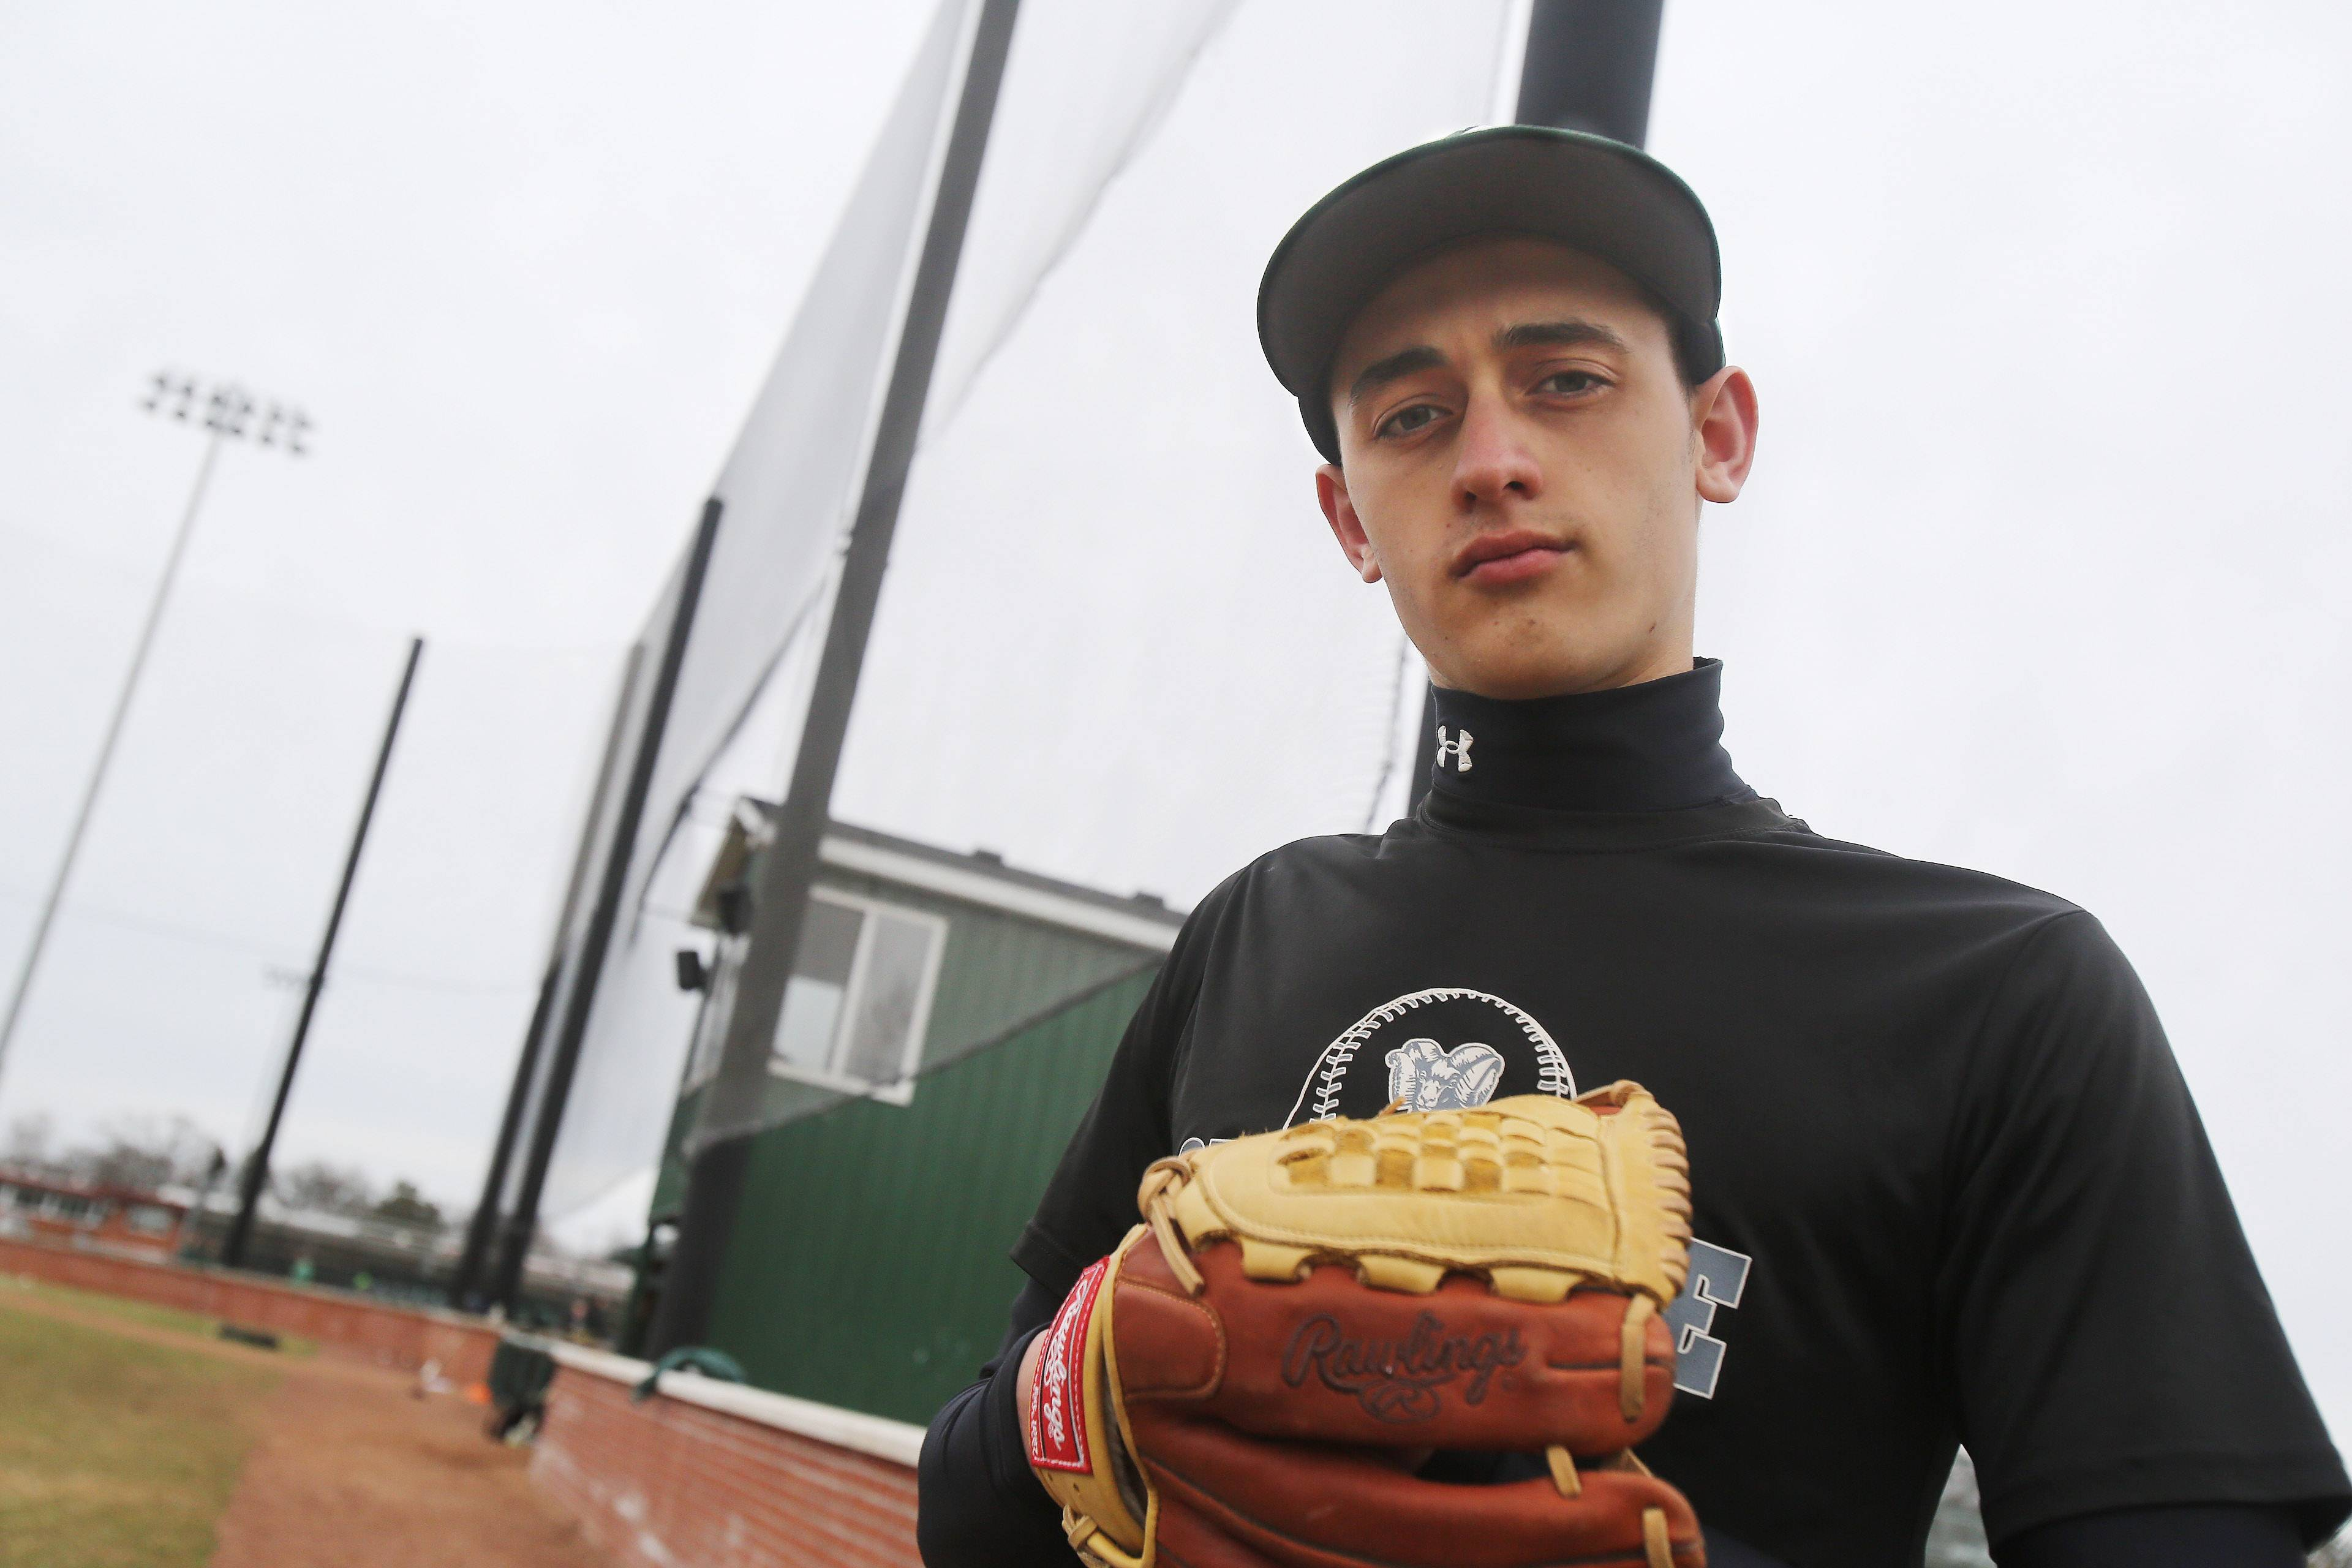 Pitcher Justin Guryn of Grayslake Central is focused on extending his terrific start to the season.